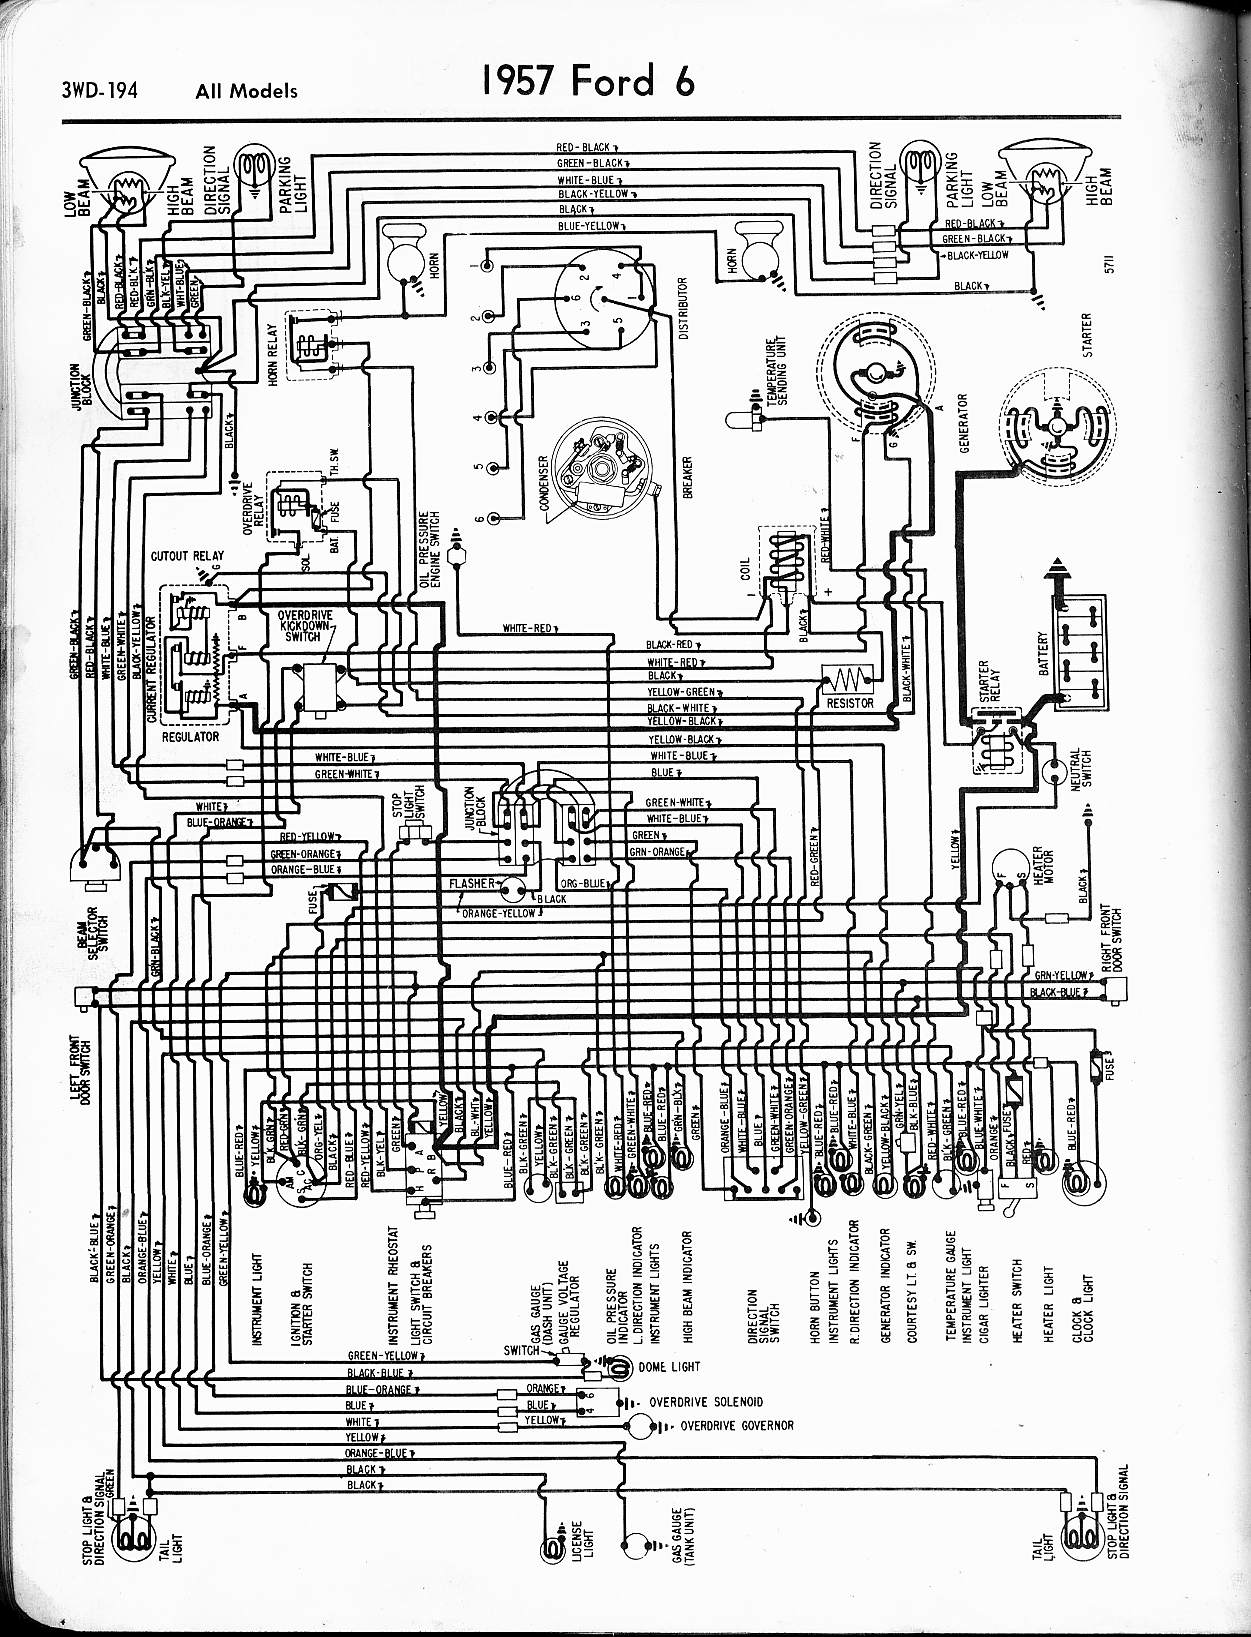 Ford Diagrams 91 Thunderbird Wiring Diagram 57 Drawing A